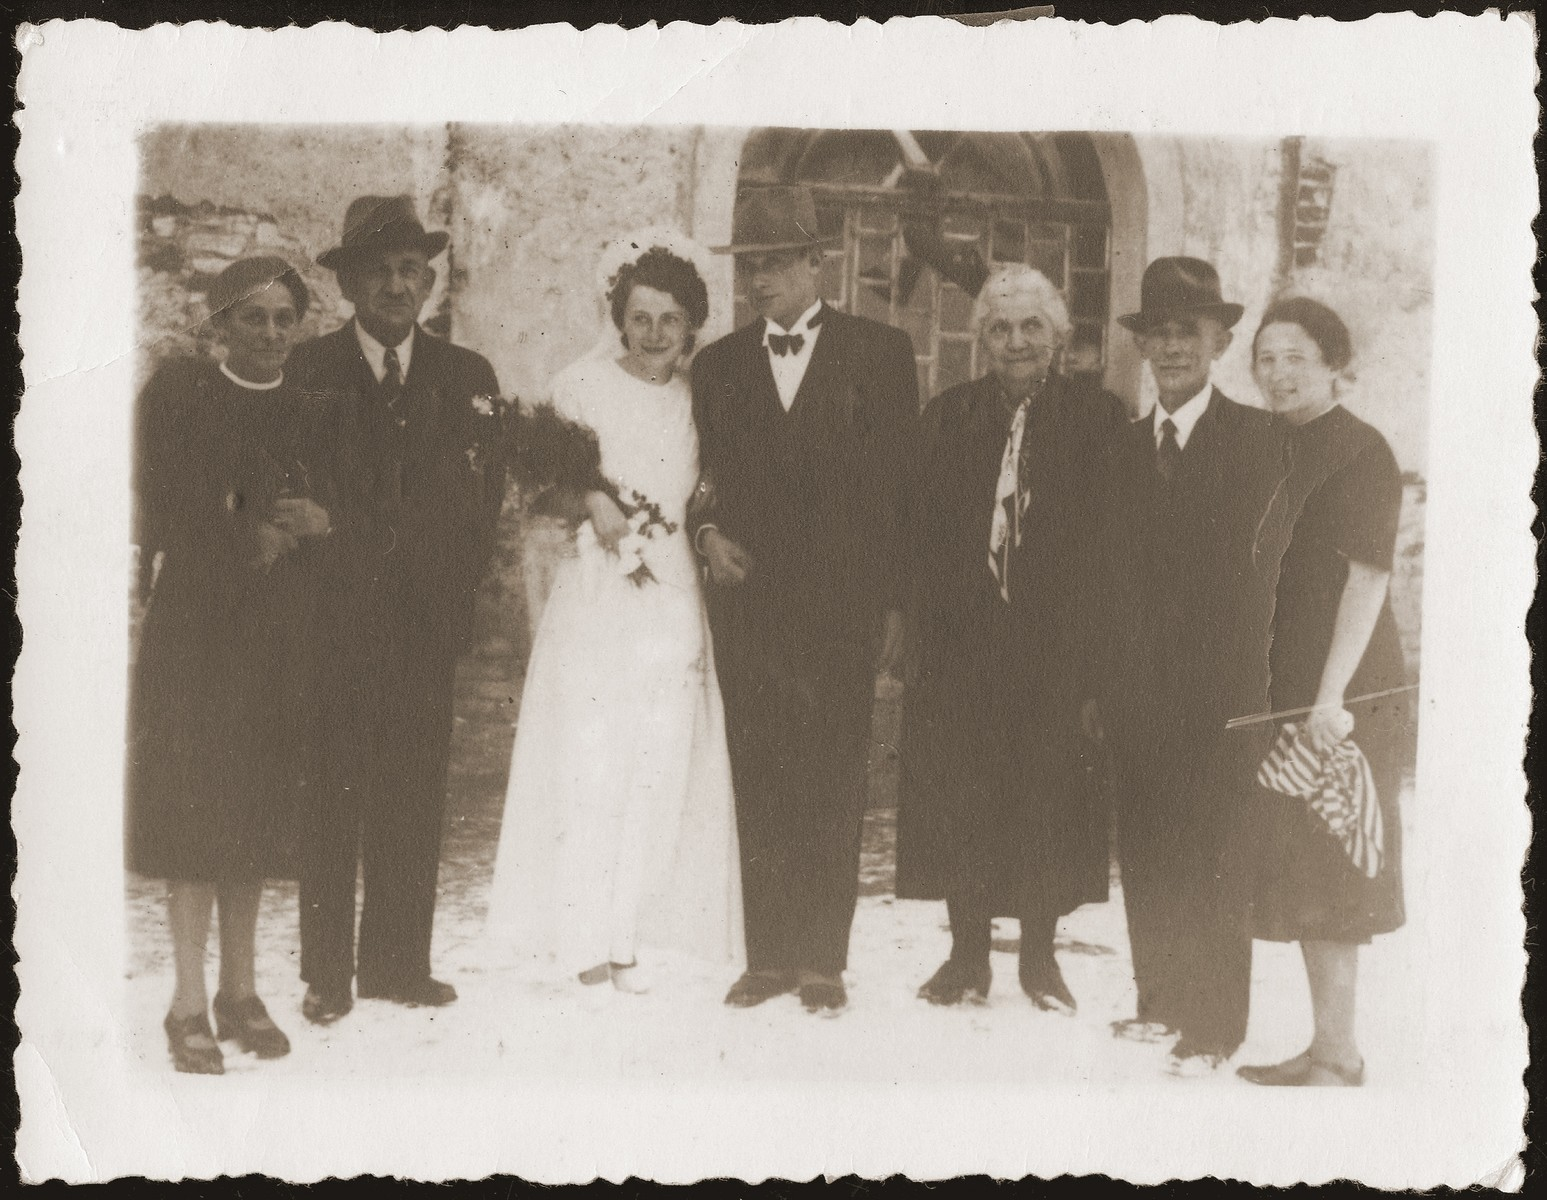 The wedding of Gera and Alfred Borchart in the Belzyce ghetto.  This photograph was sent by the Borcharts to Walter Jacobsberg in Shanghai.